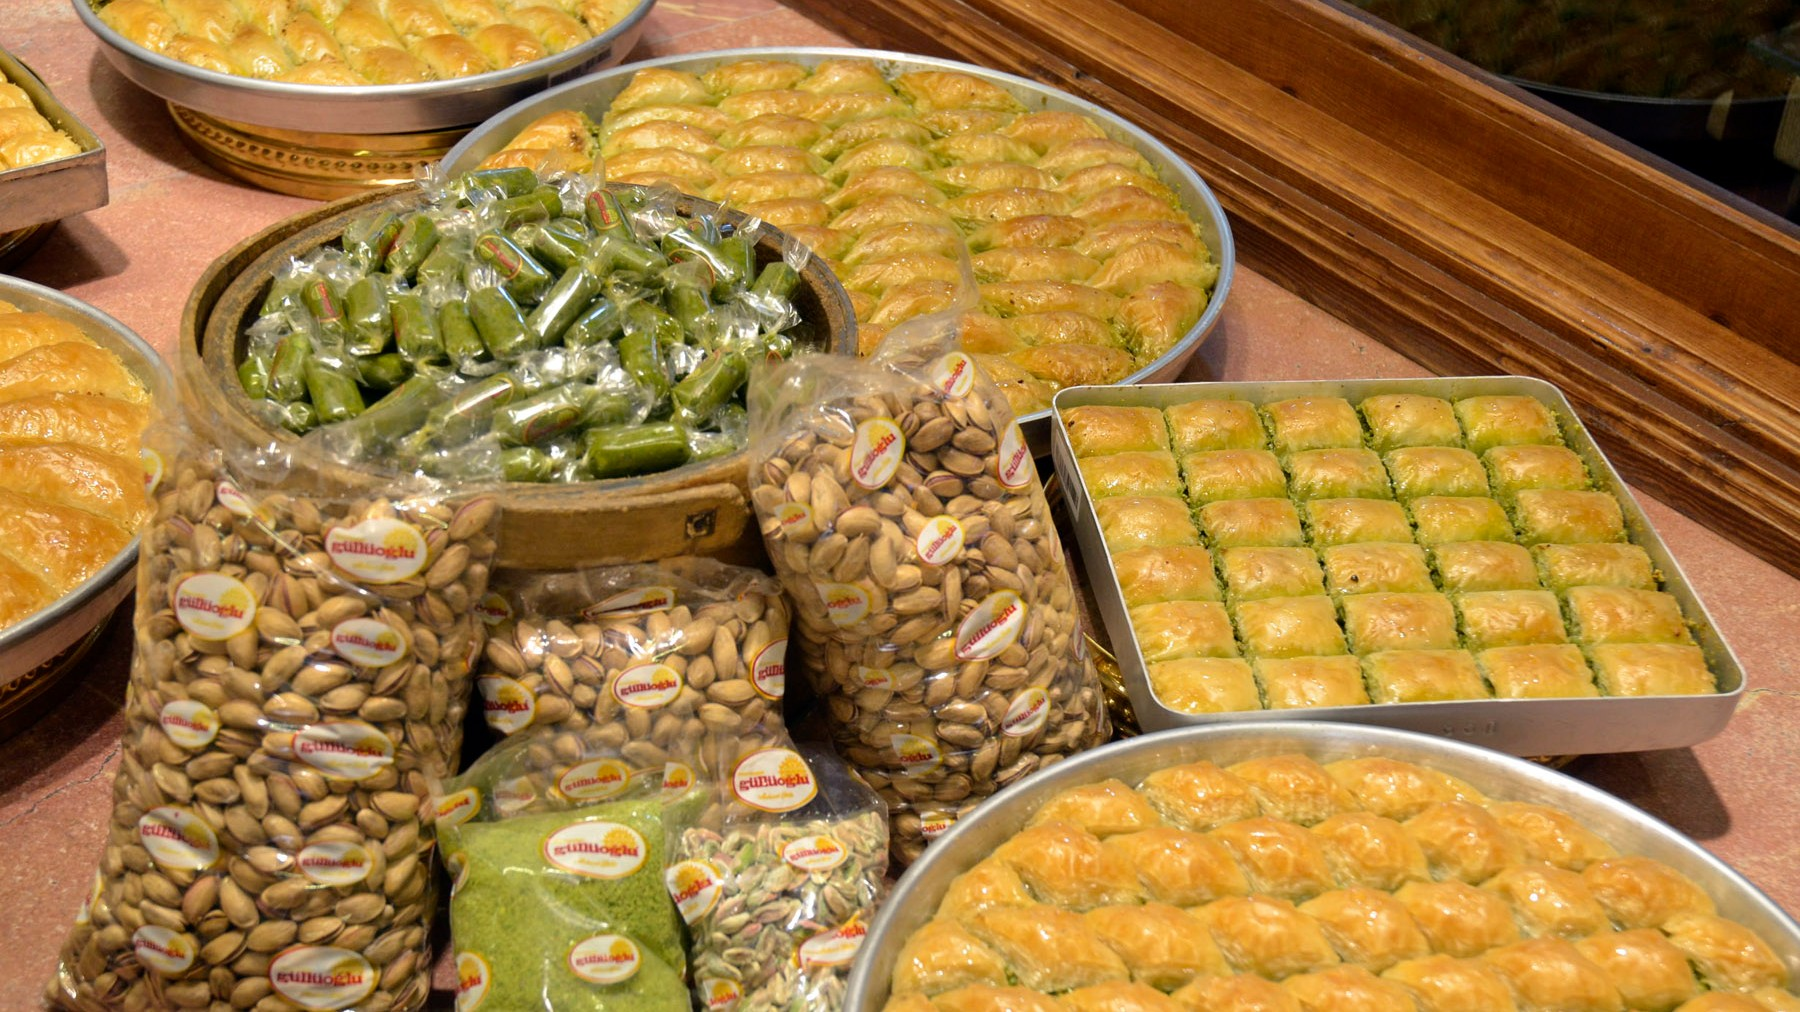 Wide assortment of baklava in Elmacı Pazarı Güllüoğlu Baklava